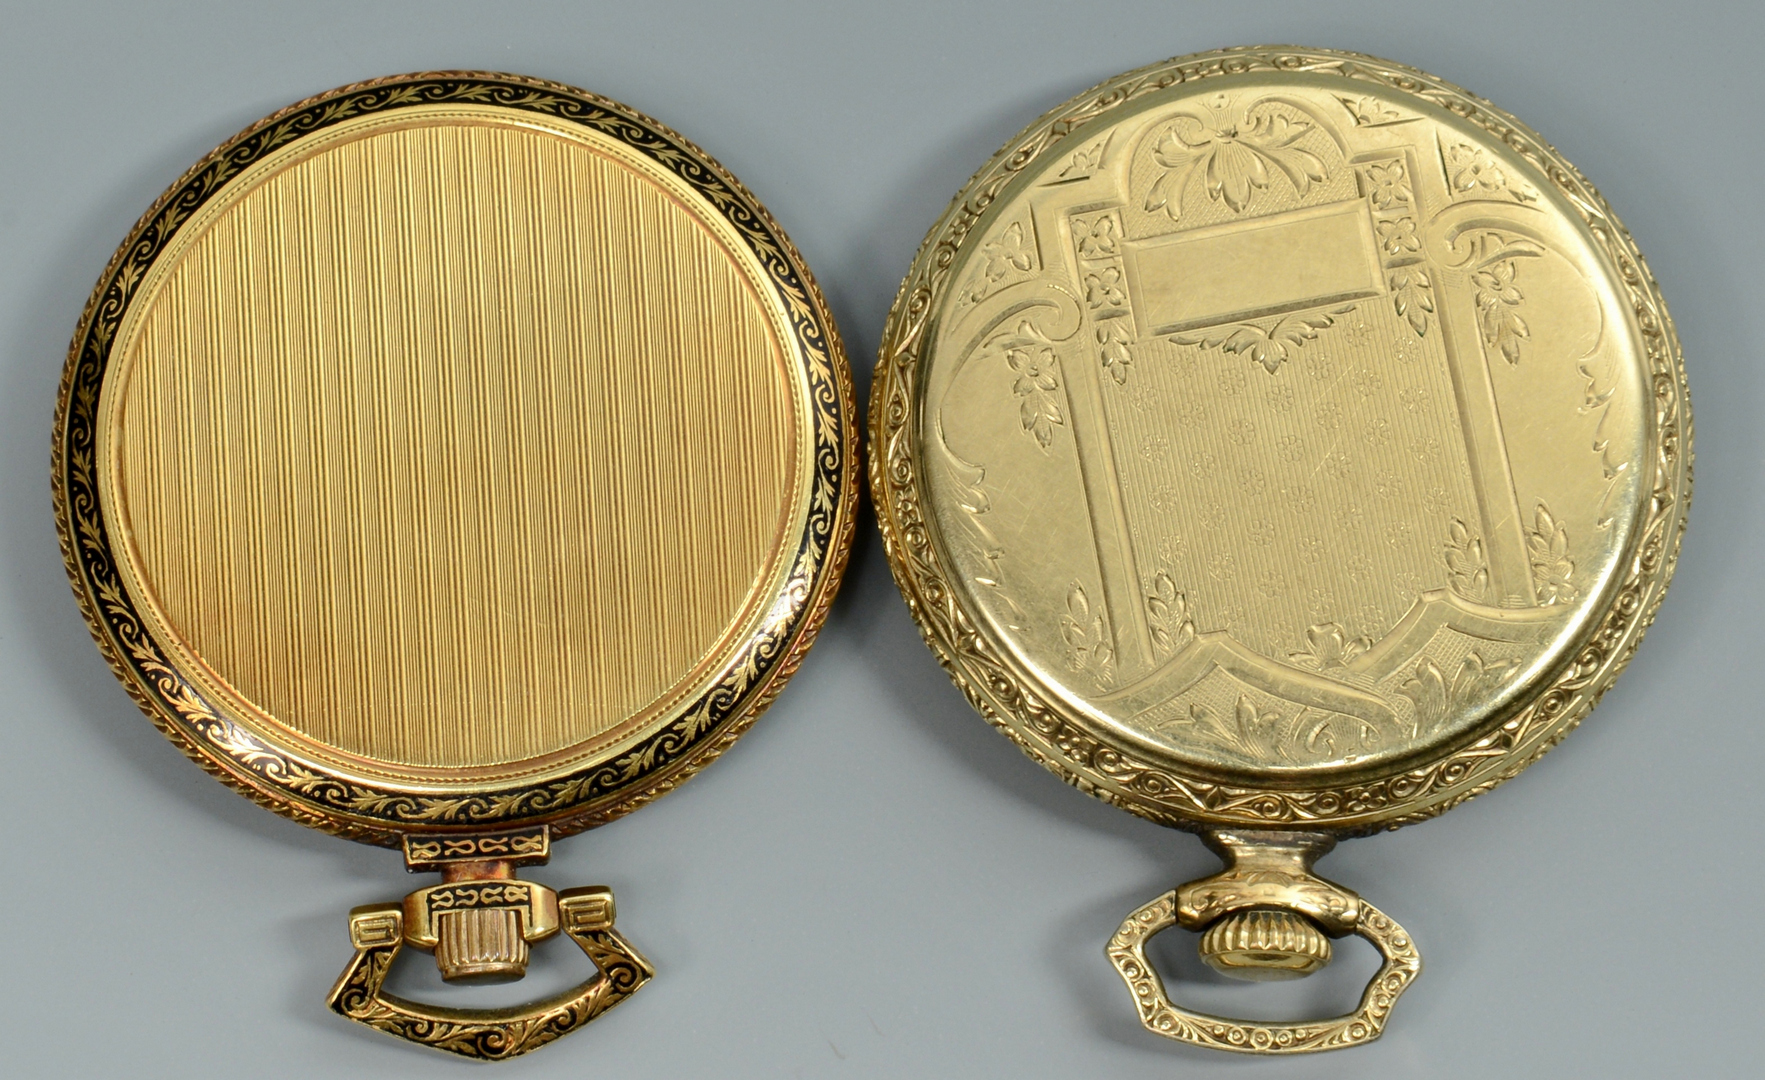 Lot 3088227: 5 Pocket Watches incl 18k Wegelin Fils